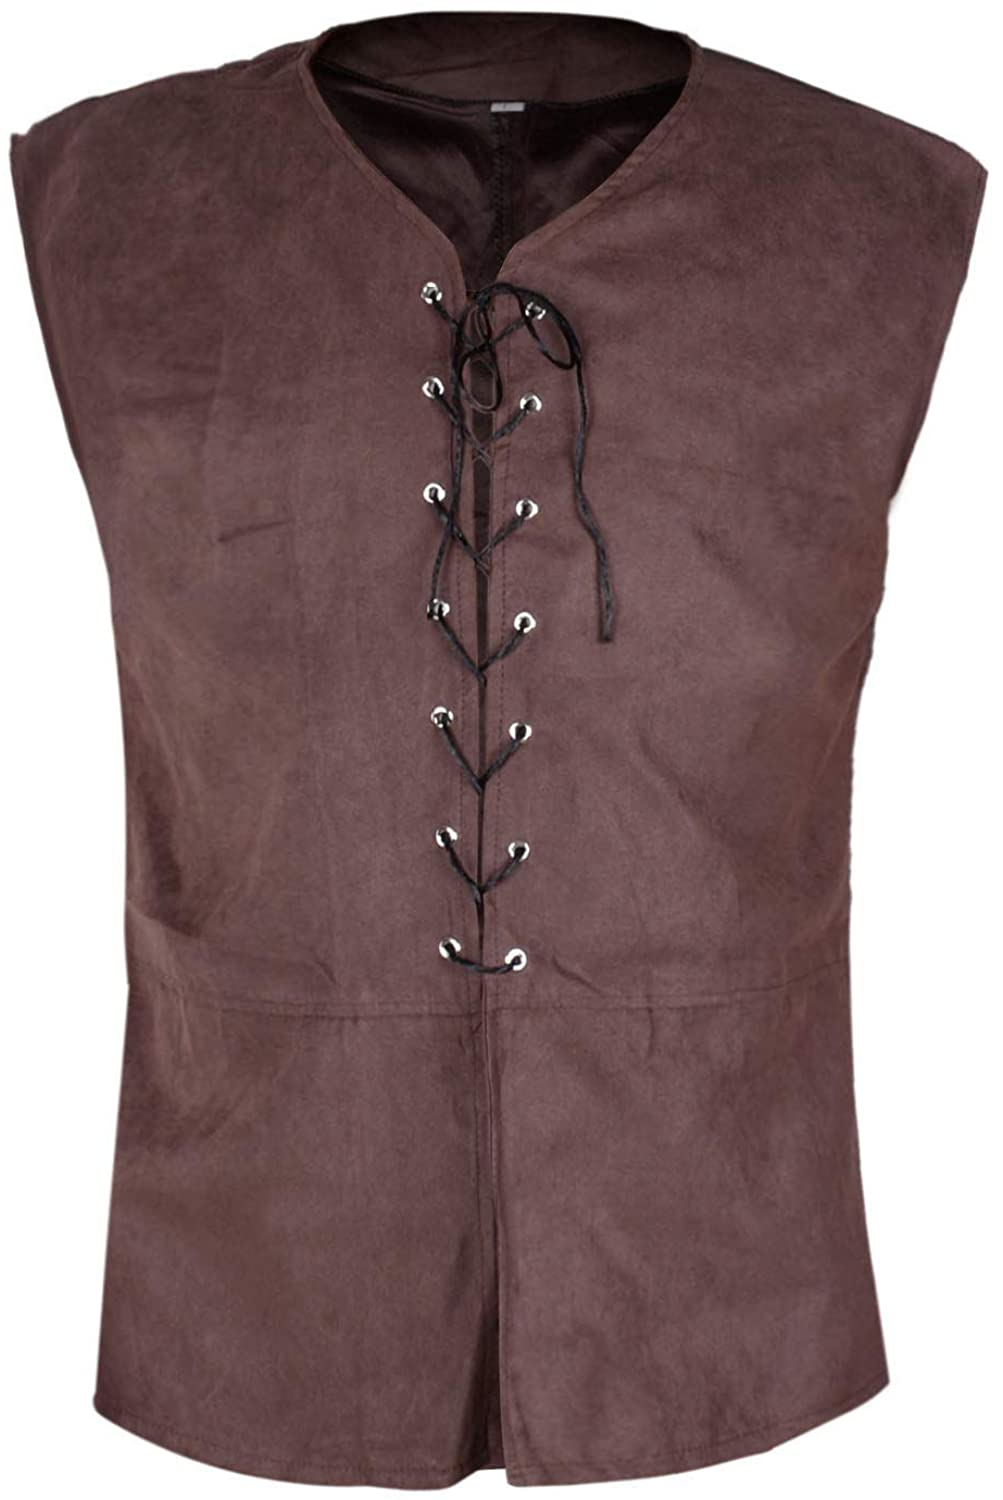 Mens Medieval Vest 18th Century Sleeveless Waistcoats Gothic Steampunk Dublets Renaissance Chevalier Pirate Costume